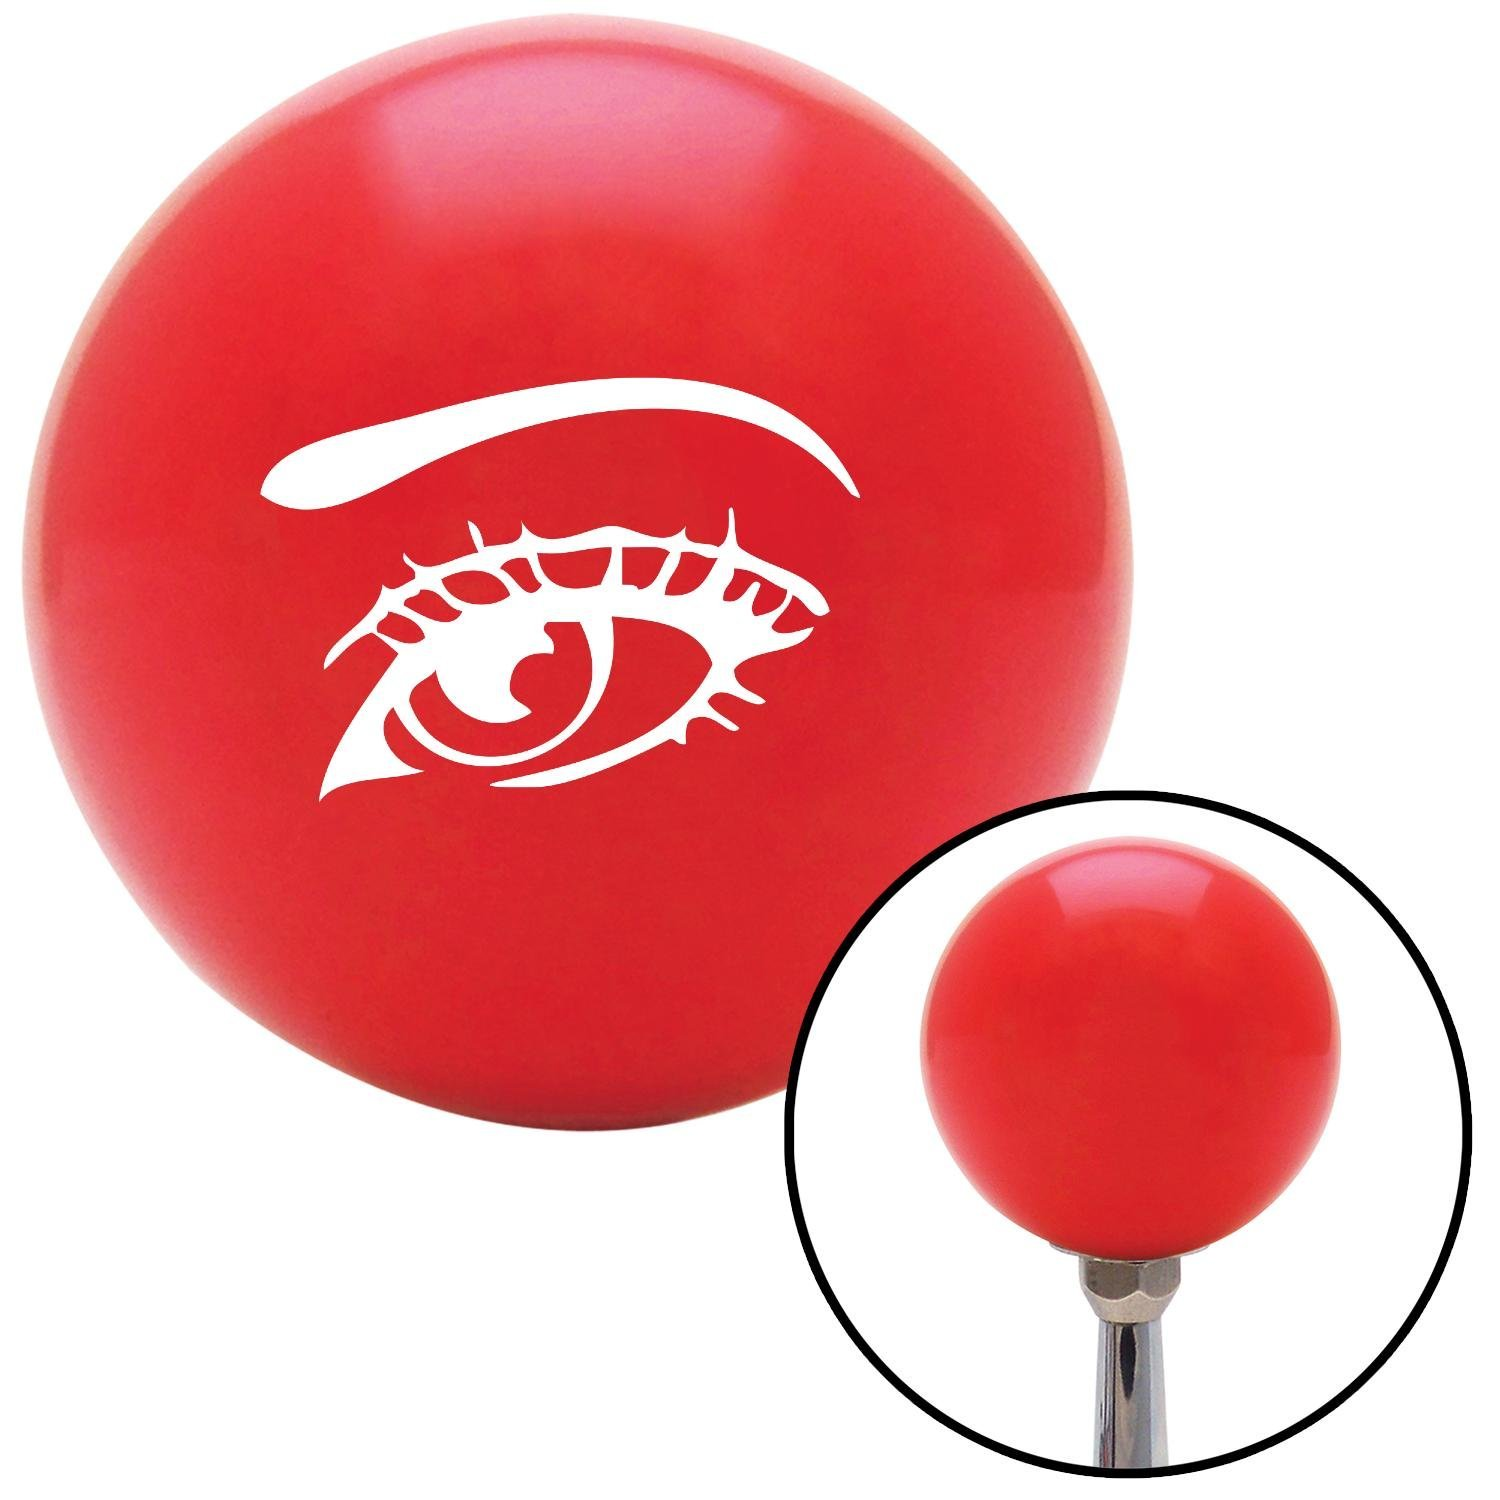 White Womans Eye American Shifter 95094 Red Shift Knob with M16 x 1.5 Insert